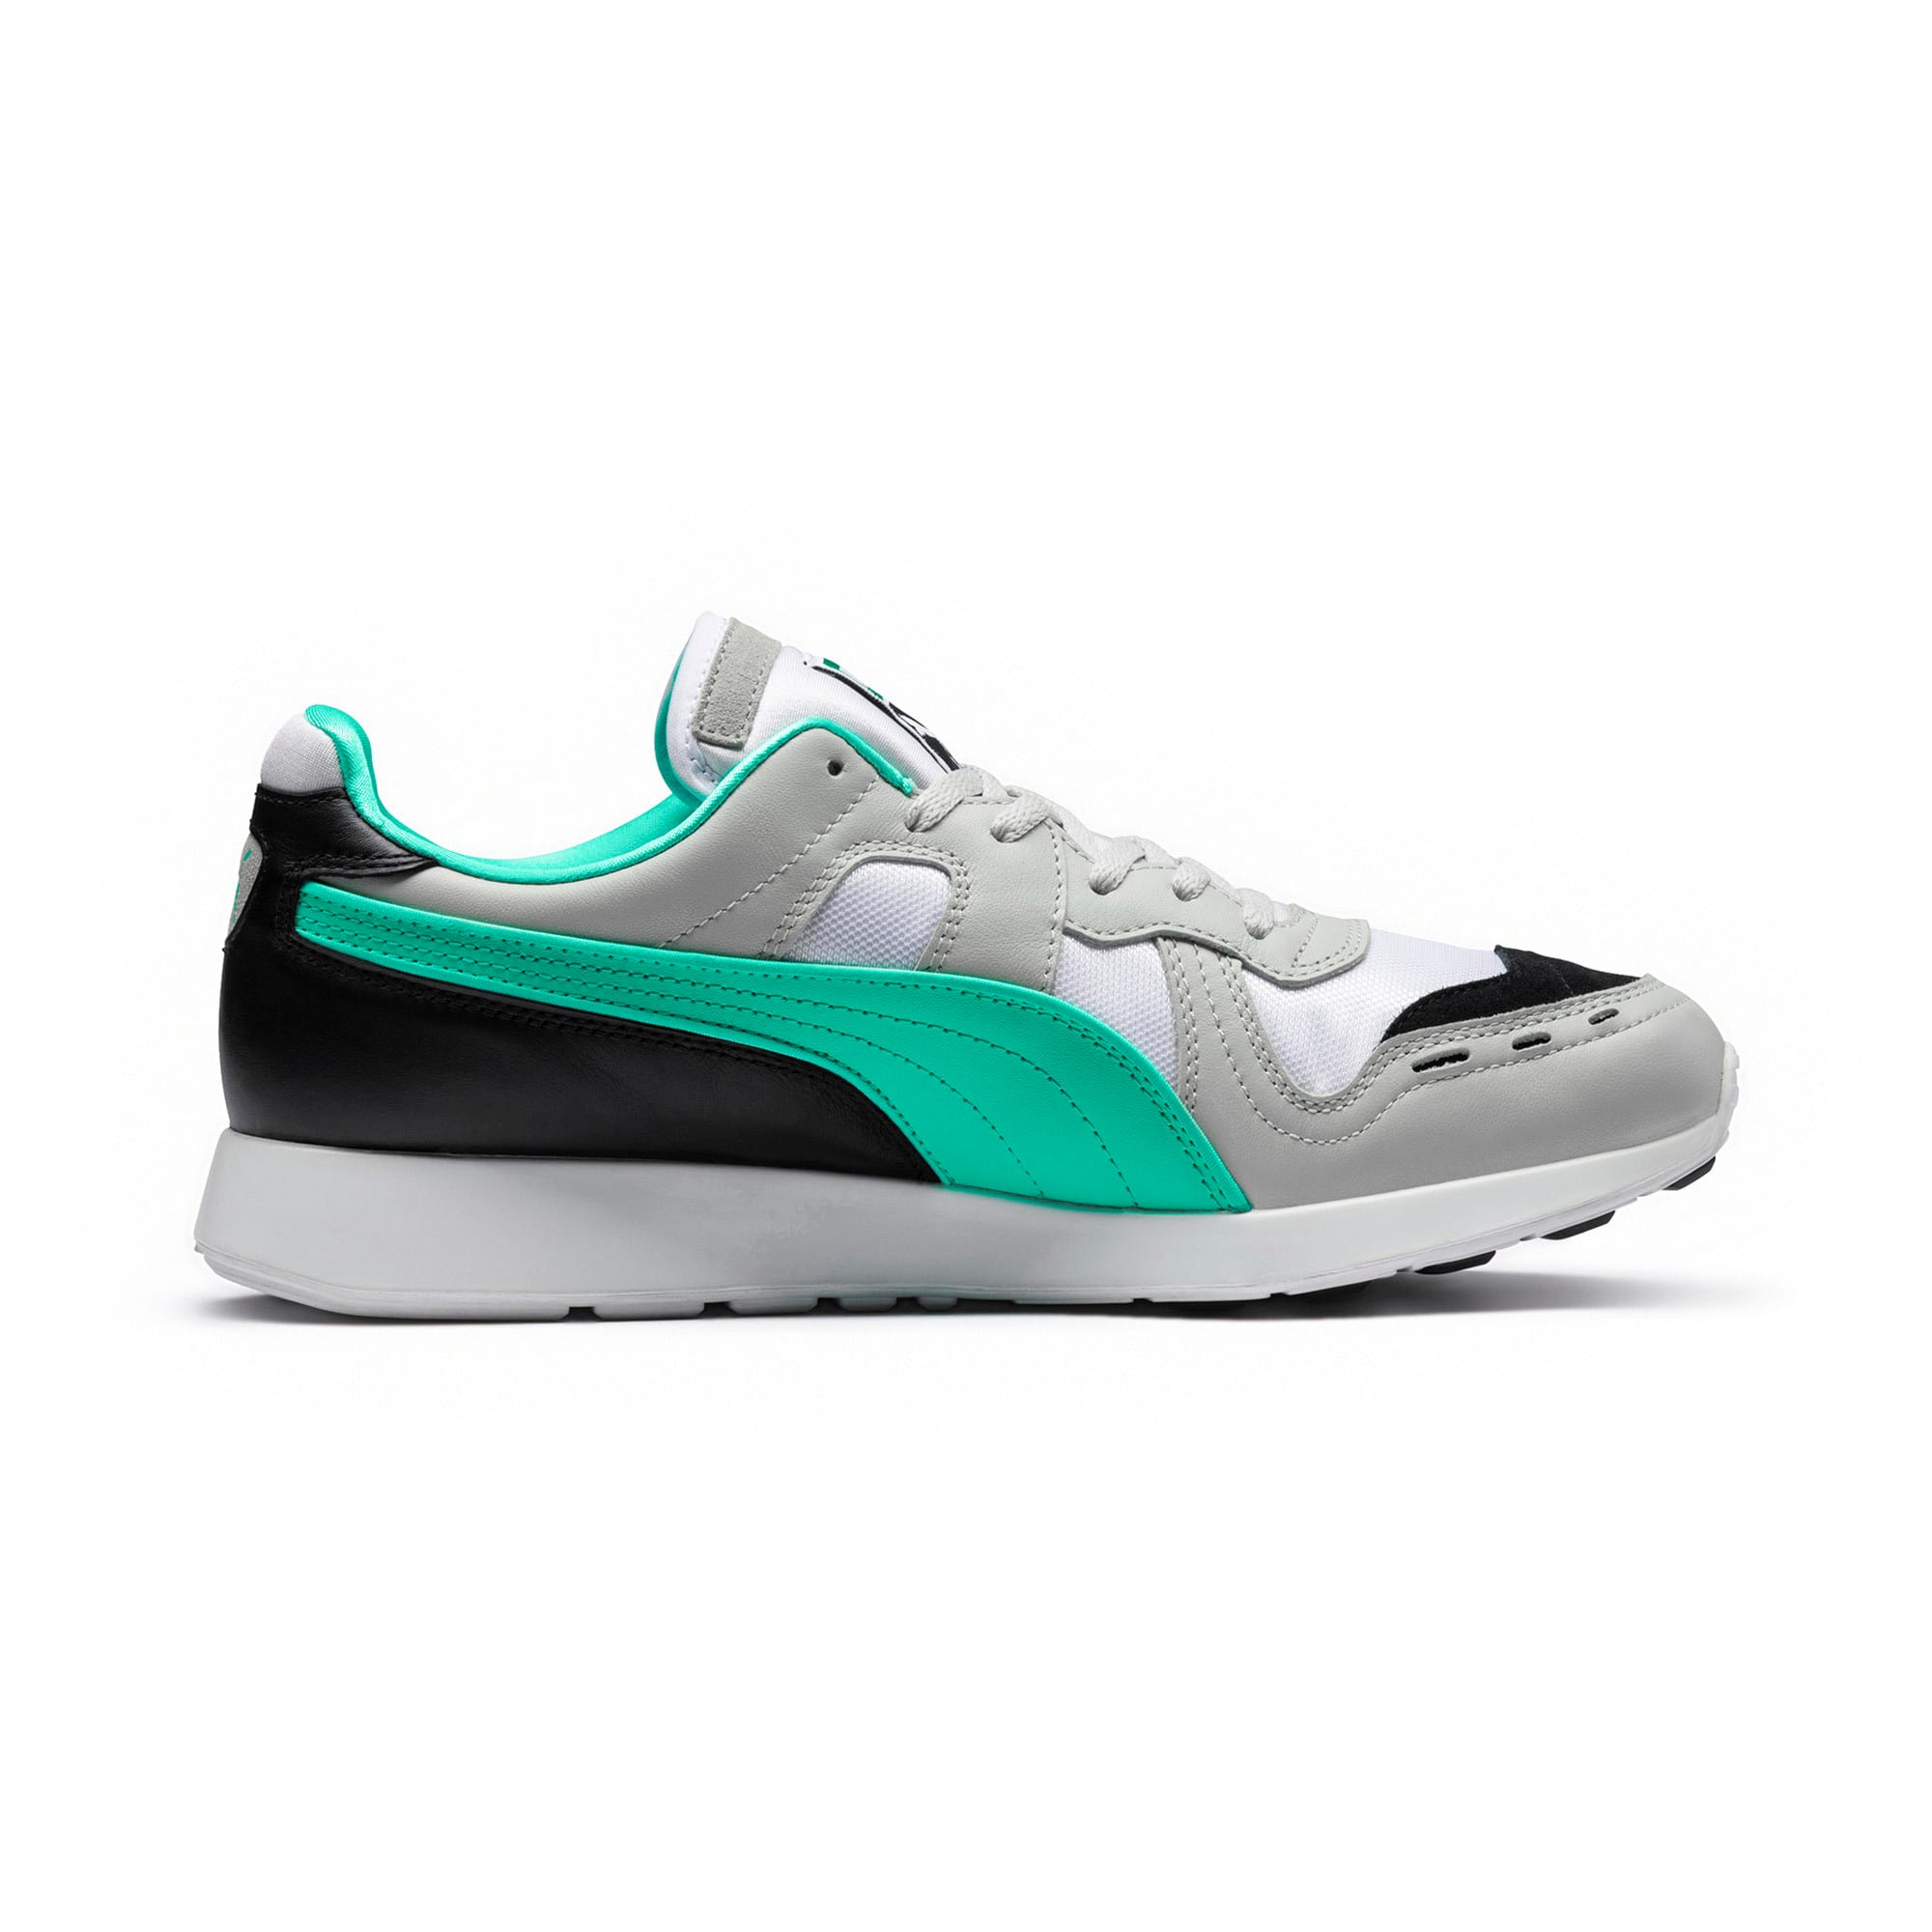 Thumbnail 5 of RS-100 RE-INVENTION, GrayViolet-BiscayGreen-White, medium-JPN